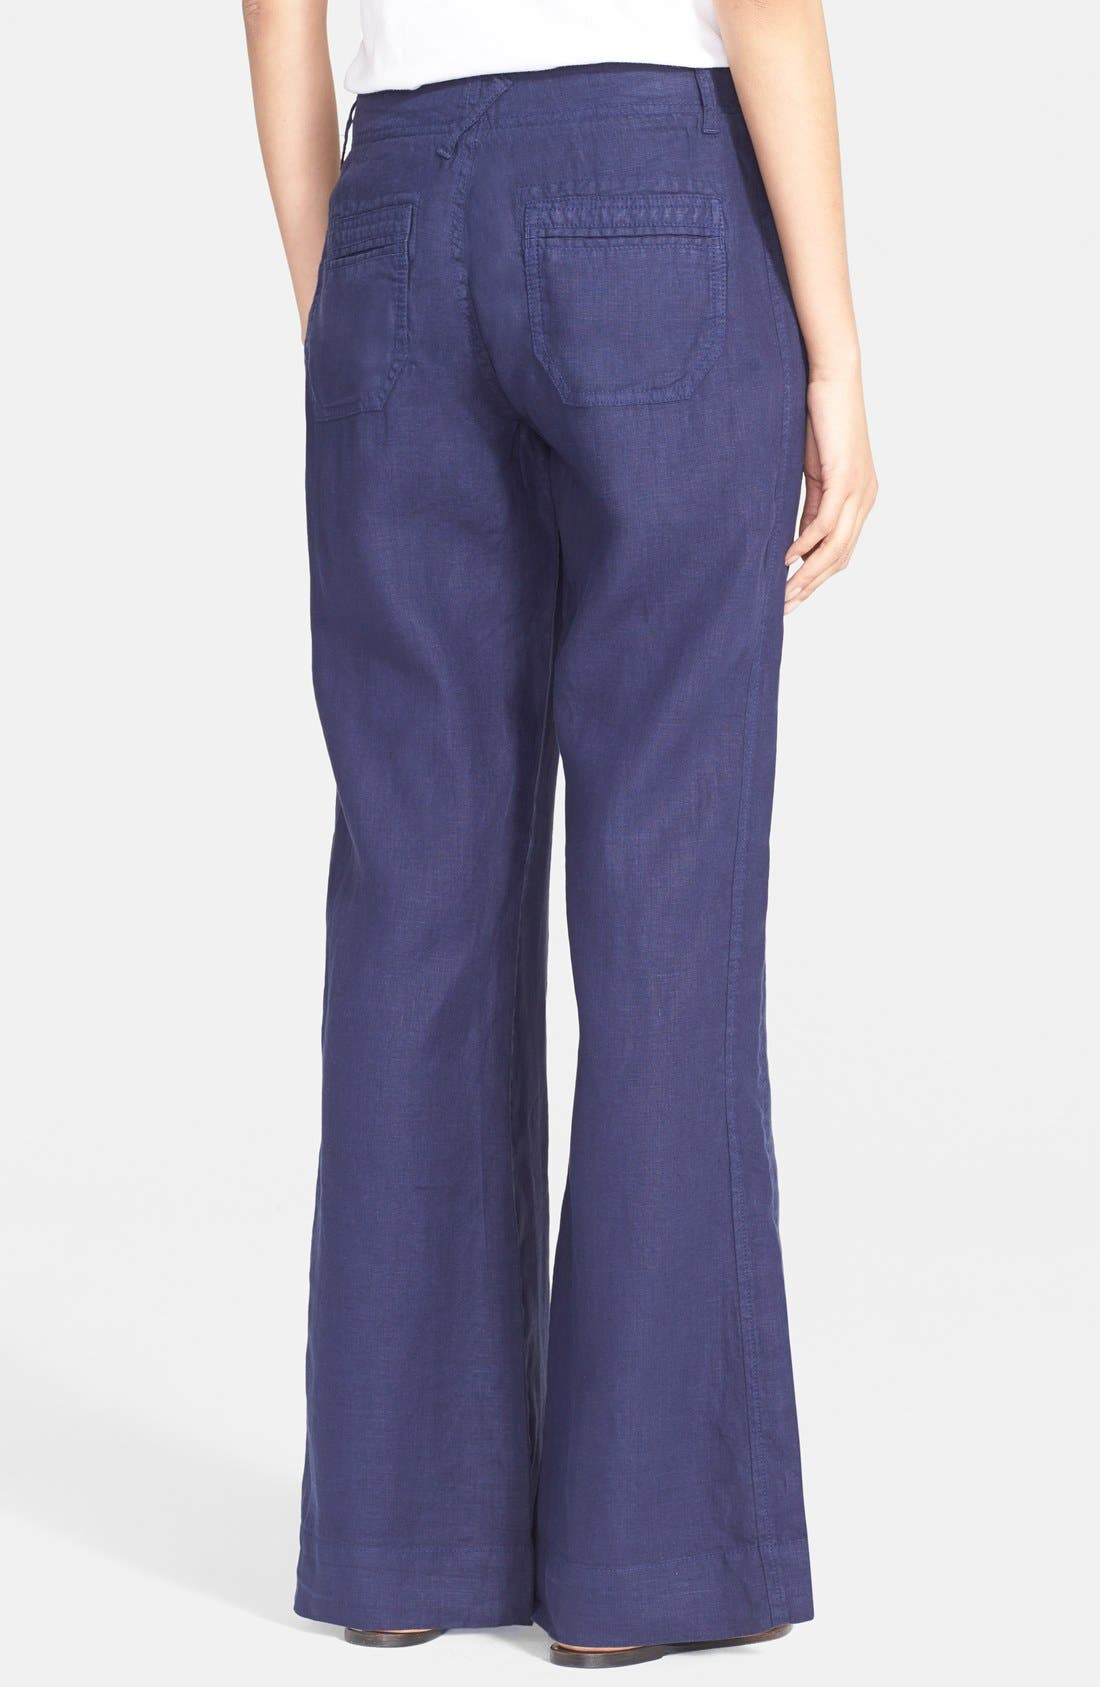 Wide Leg Linen Pants,                             Alternate thumbnail 2, color,                             418